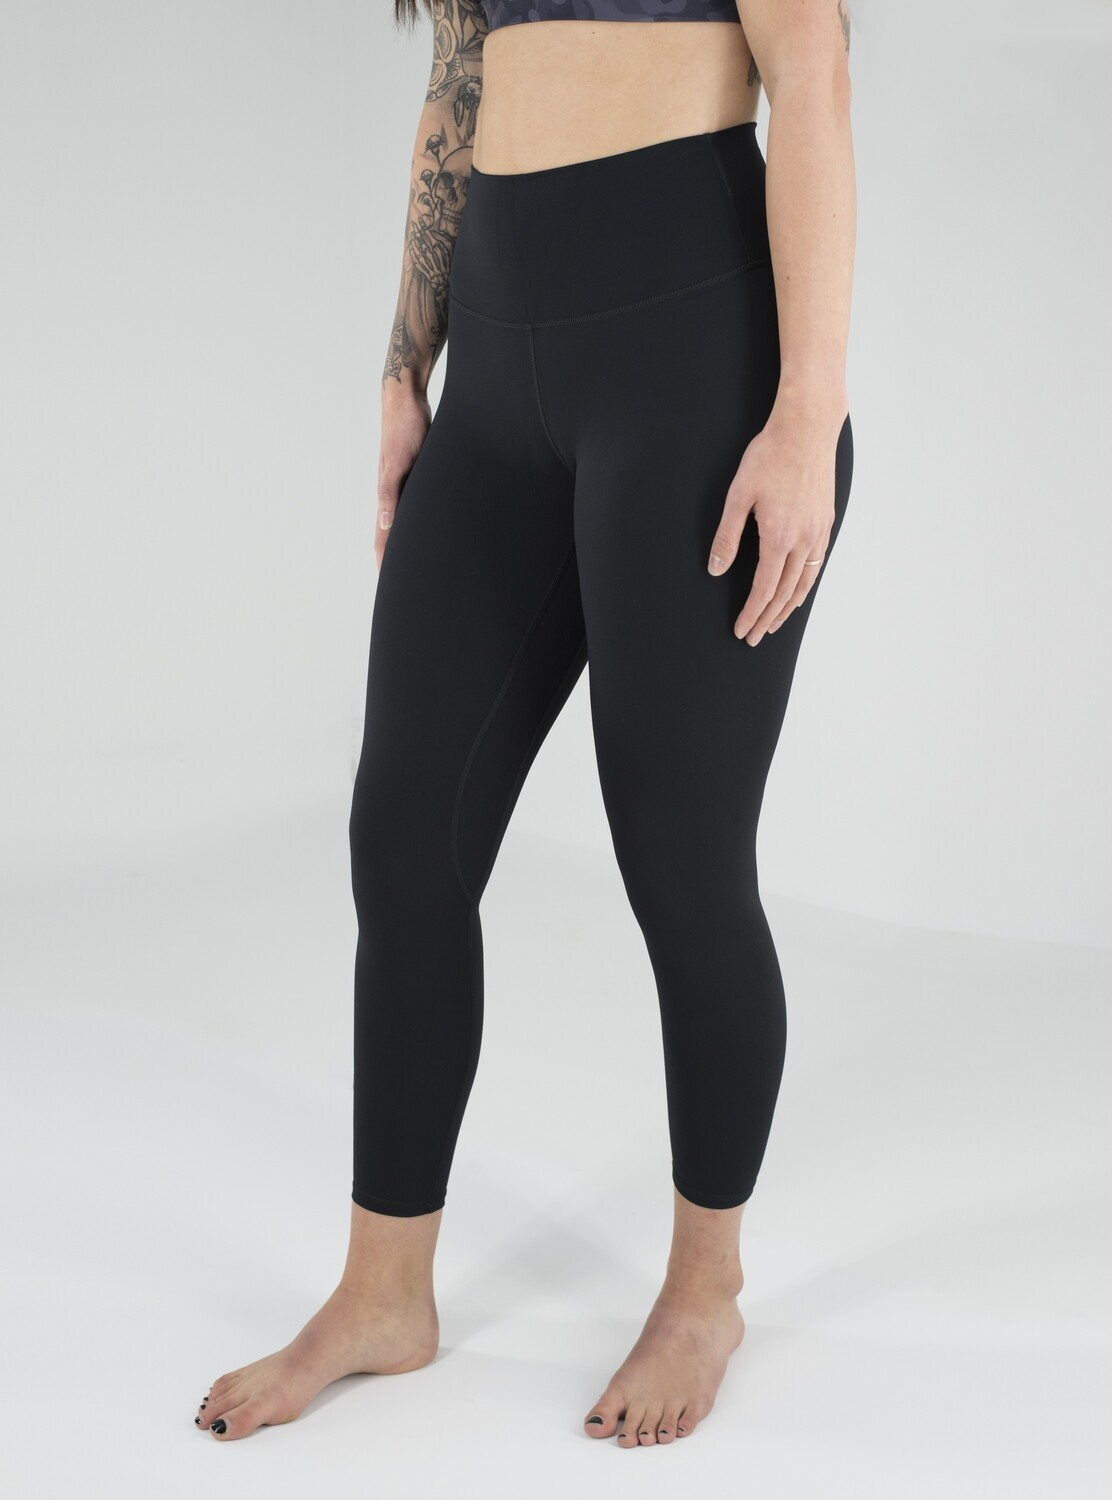 RYM HIGH-WAISTED 7/8 LEGGINGS